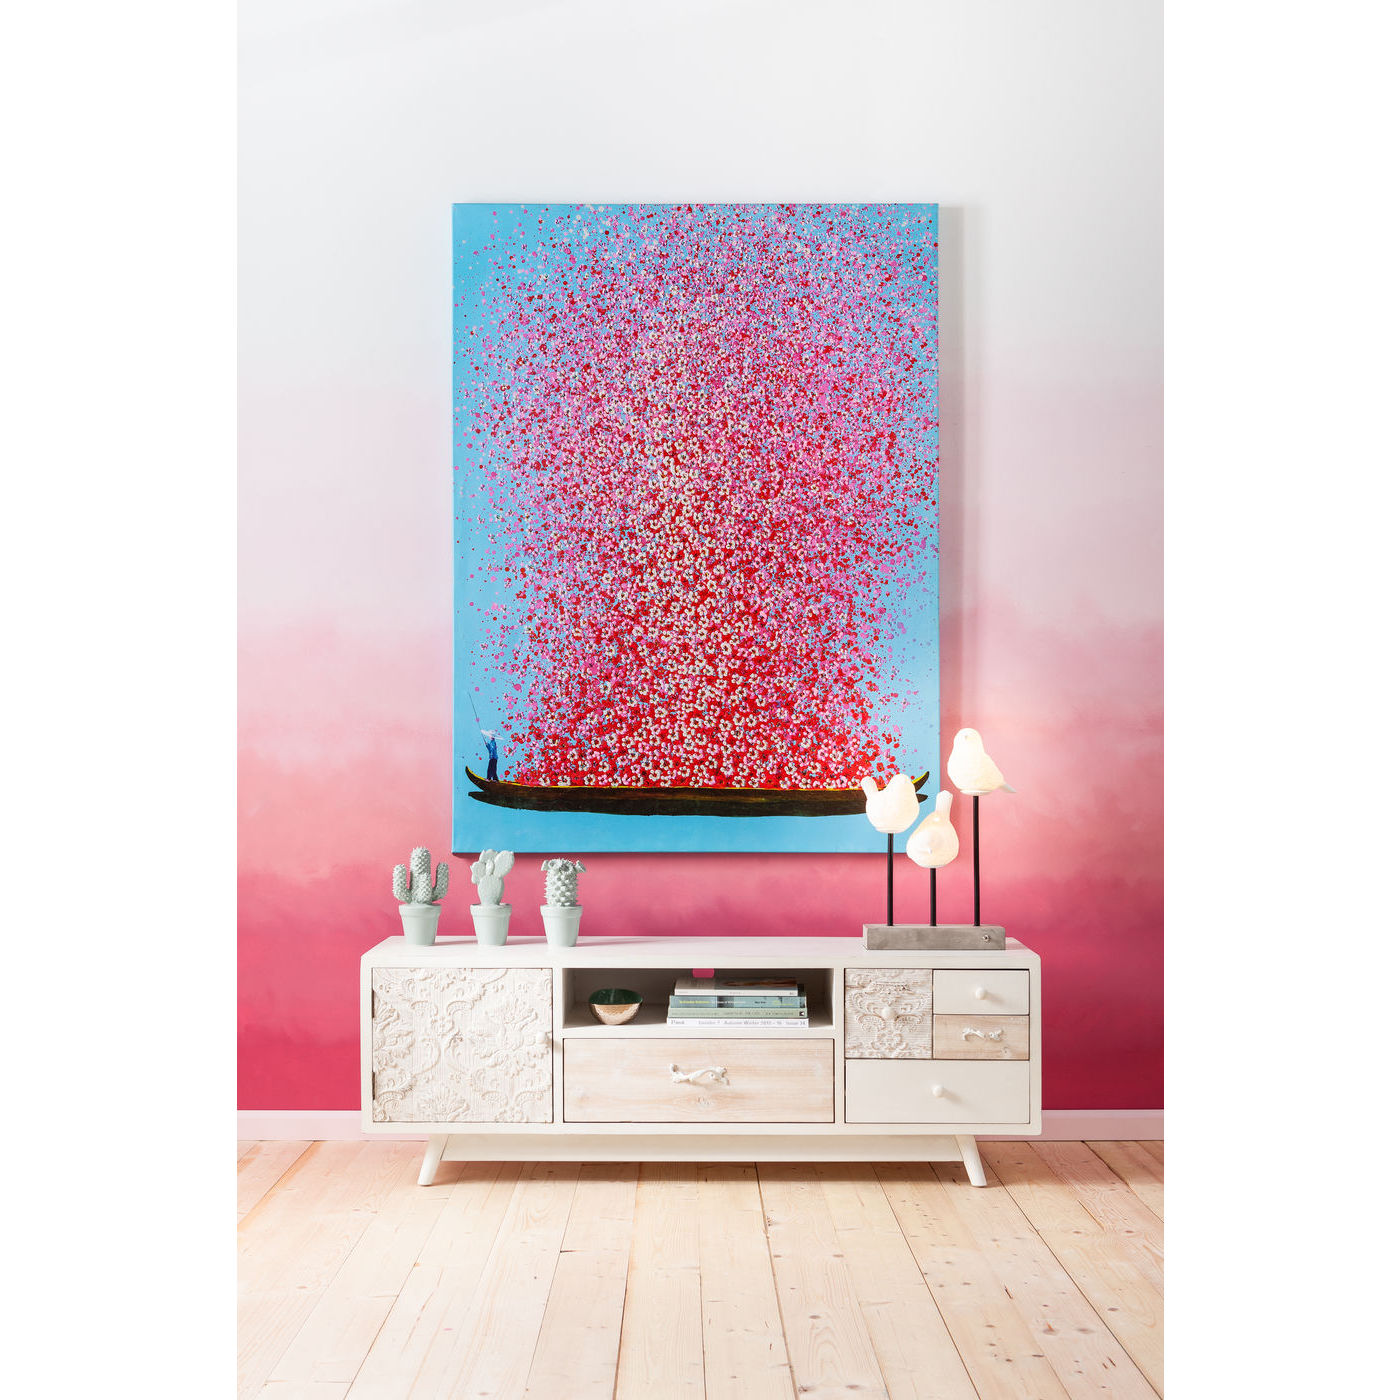 bild gem lde druck kunstdruck lbild leinwand blau rosa. Black Bedroom Furniture Sets. Home Design Ideas